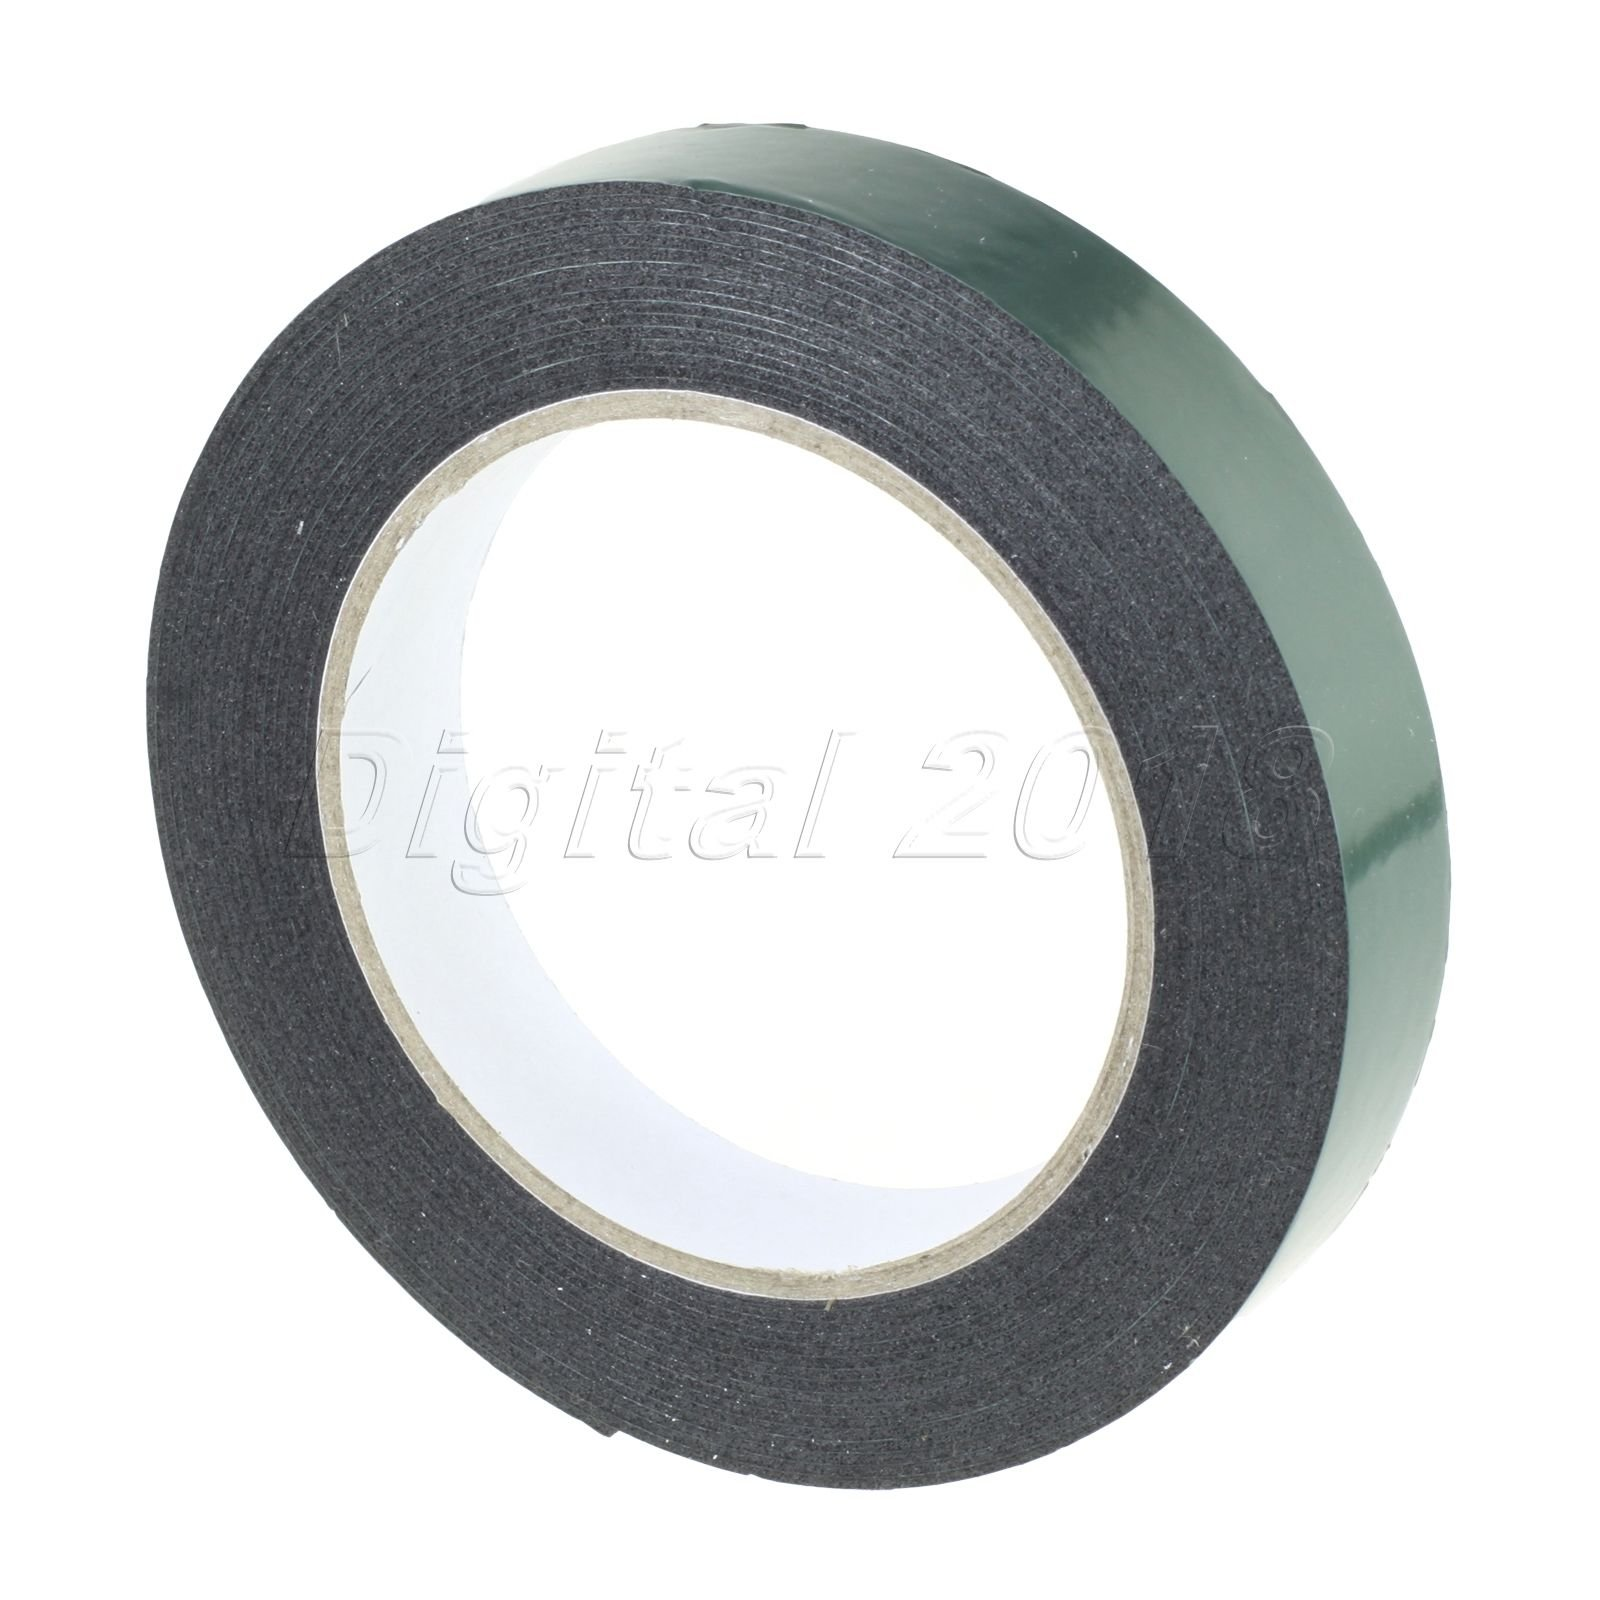 EUTTEUM Heavy Duty Double Sided Mounting Tape Sticky Self Adhesive Strong Foam 5M